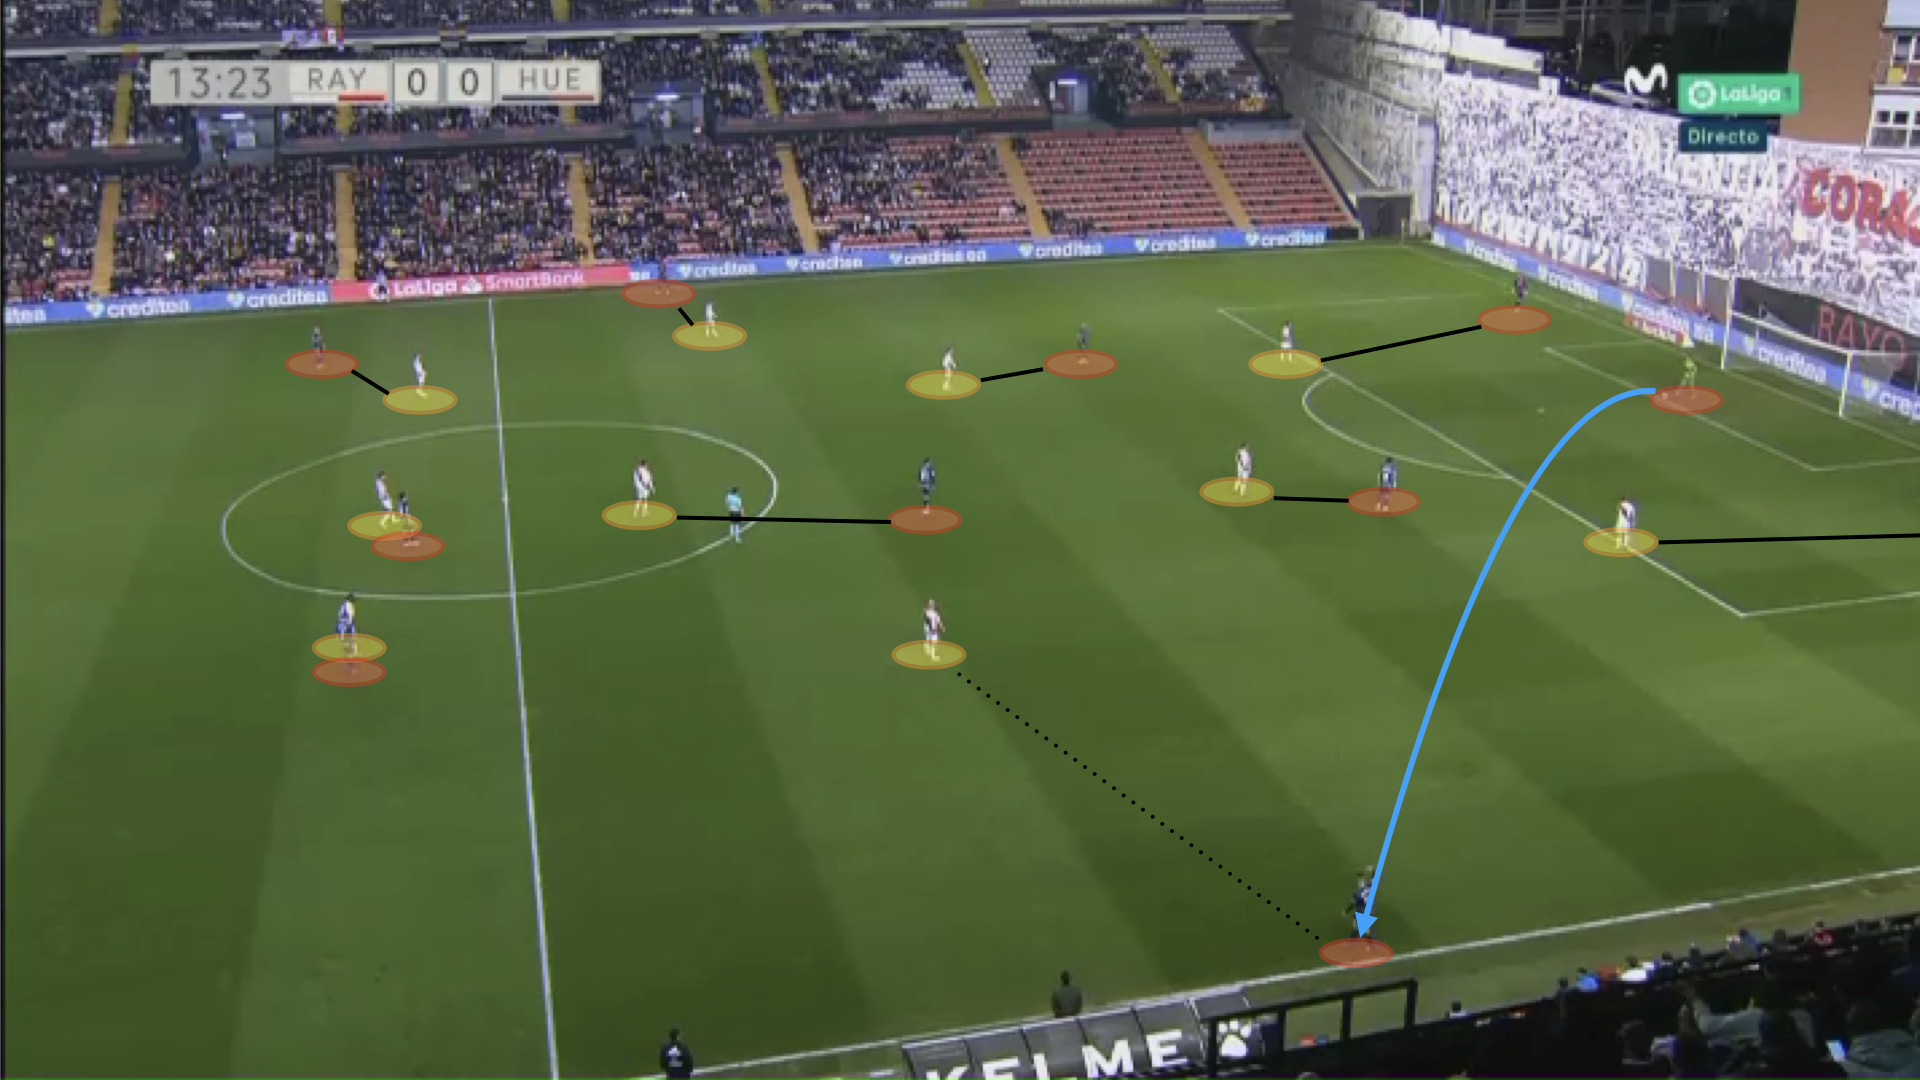 Paco Jemez at Rayo Vallecano 2019/20 - tactical analysis tactics